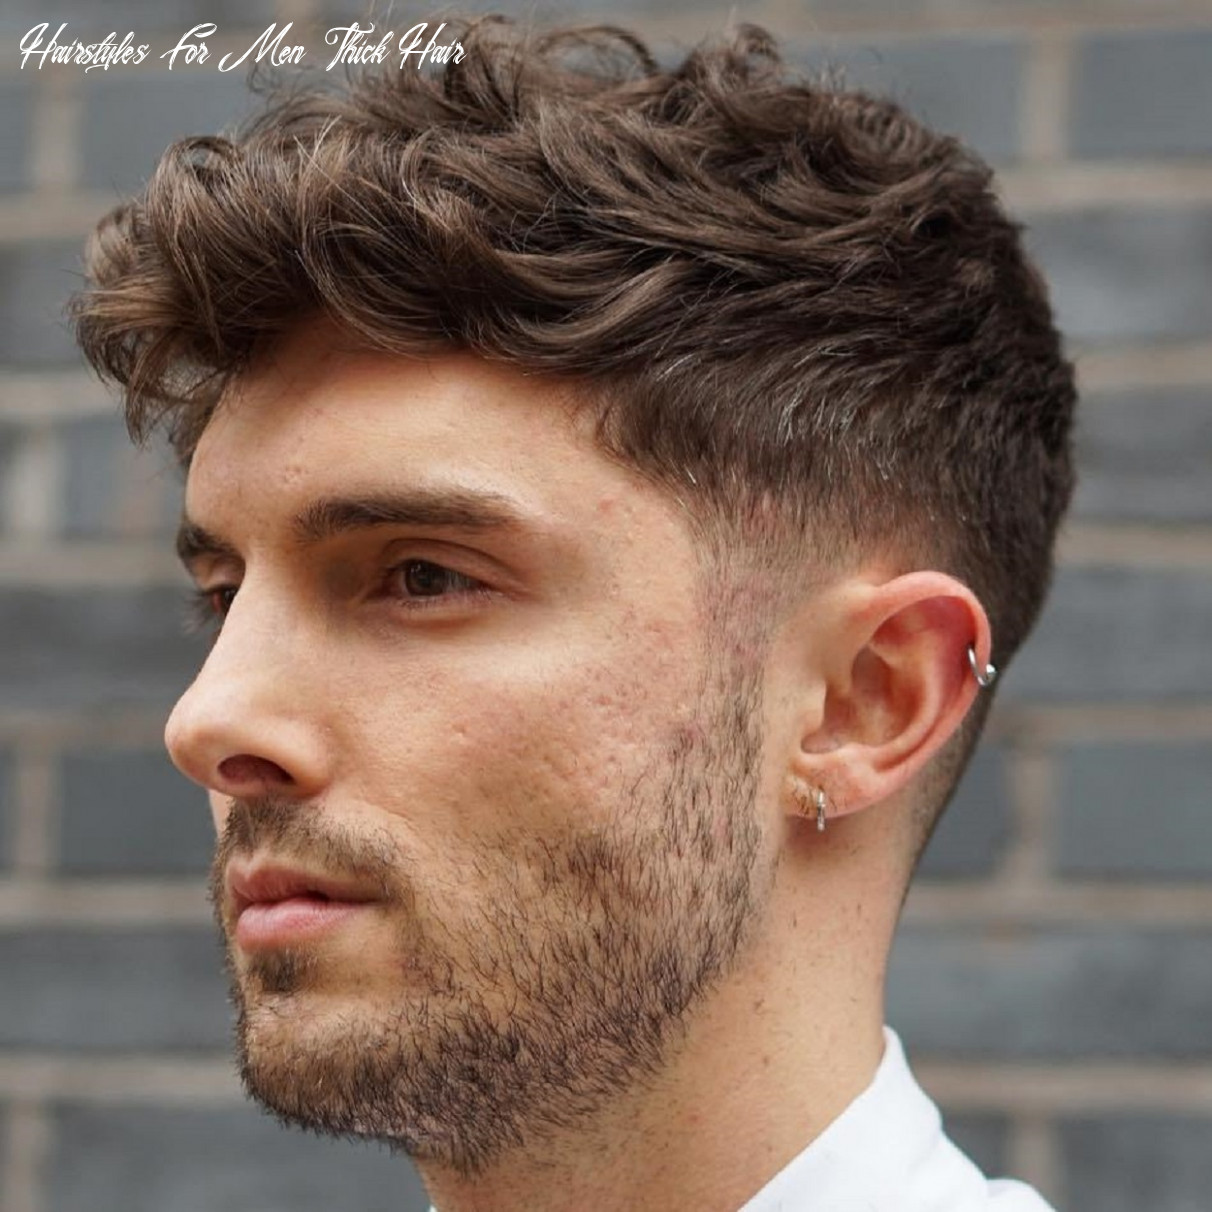 12 statement hairstyles for men with thick hair hairstyles for men thick hair